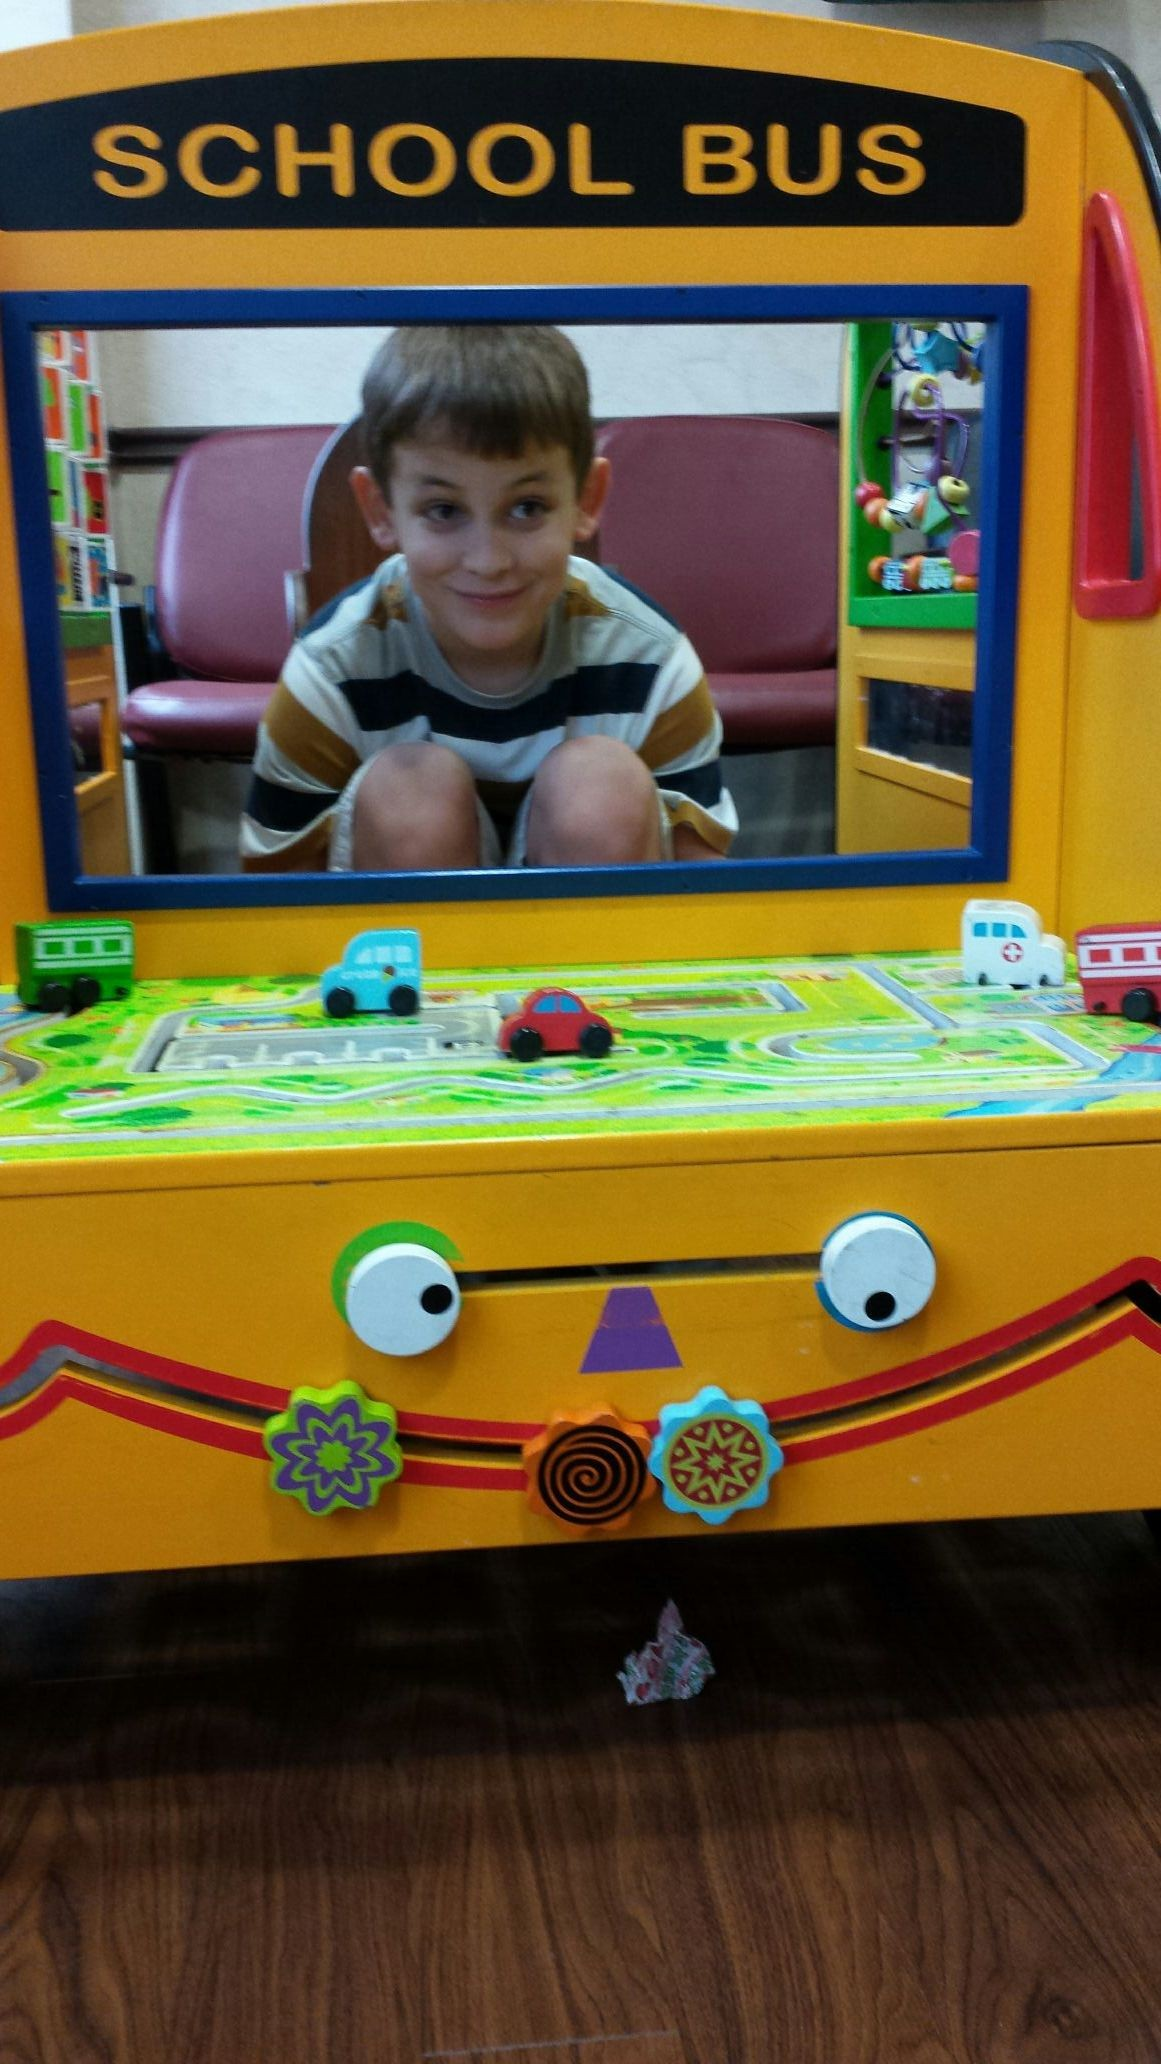 Clay at doc office..neing silly